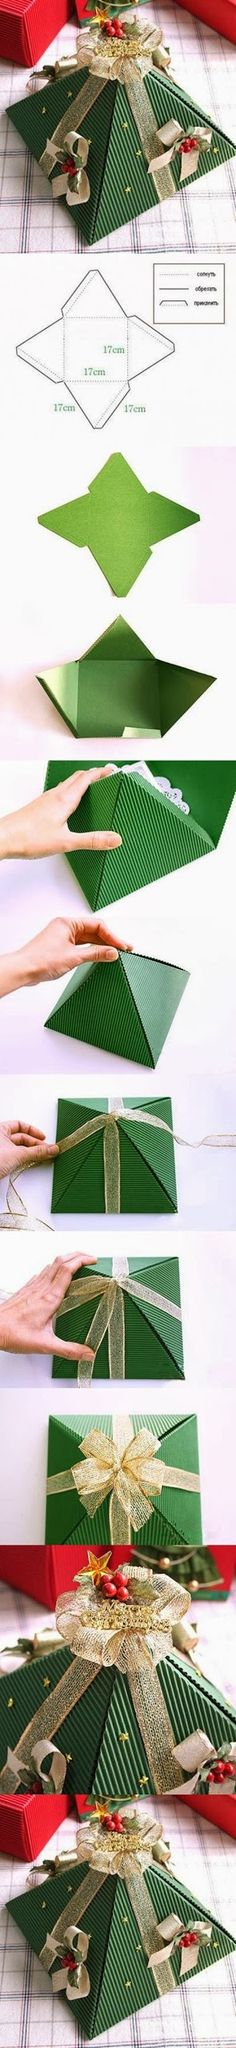 DIY-Pyramid-Christmas-Box